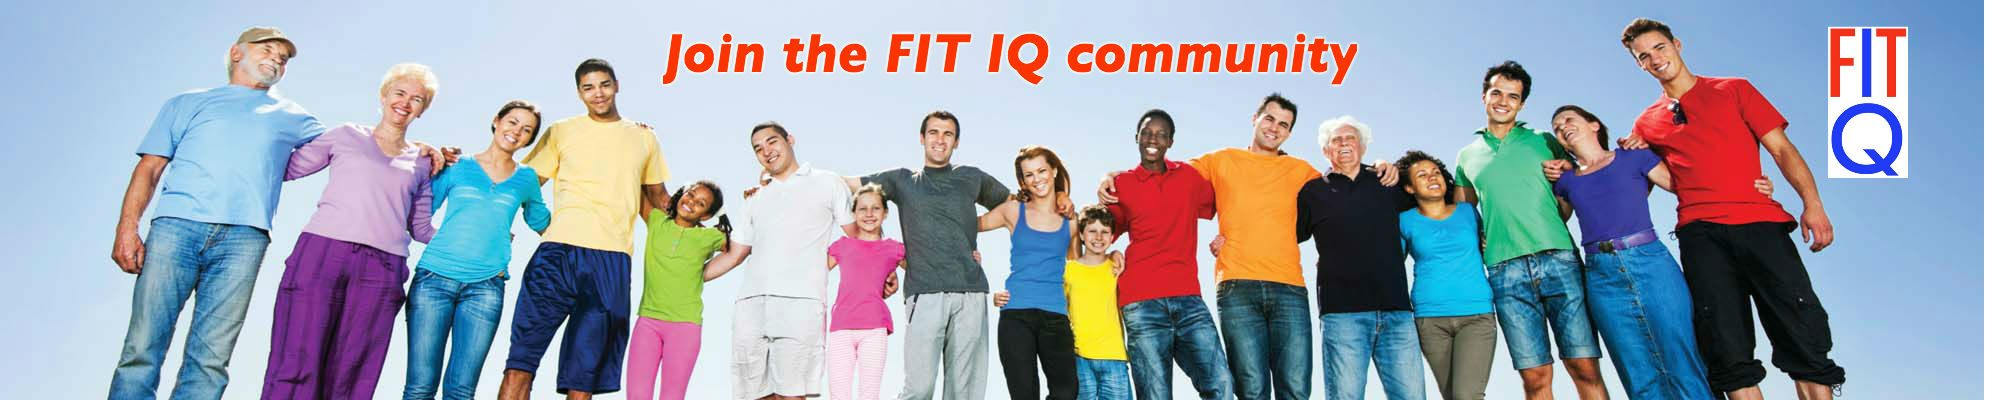 cropped-FIT-iq-long-banner-1.jpg